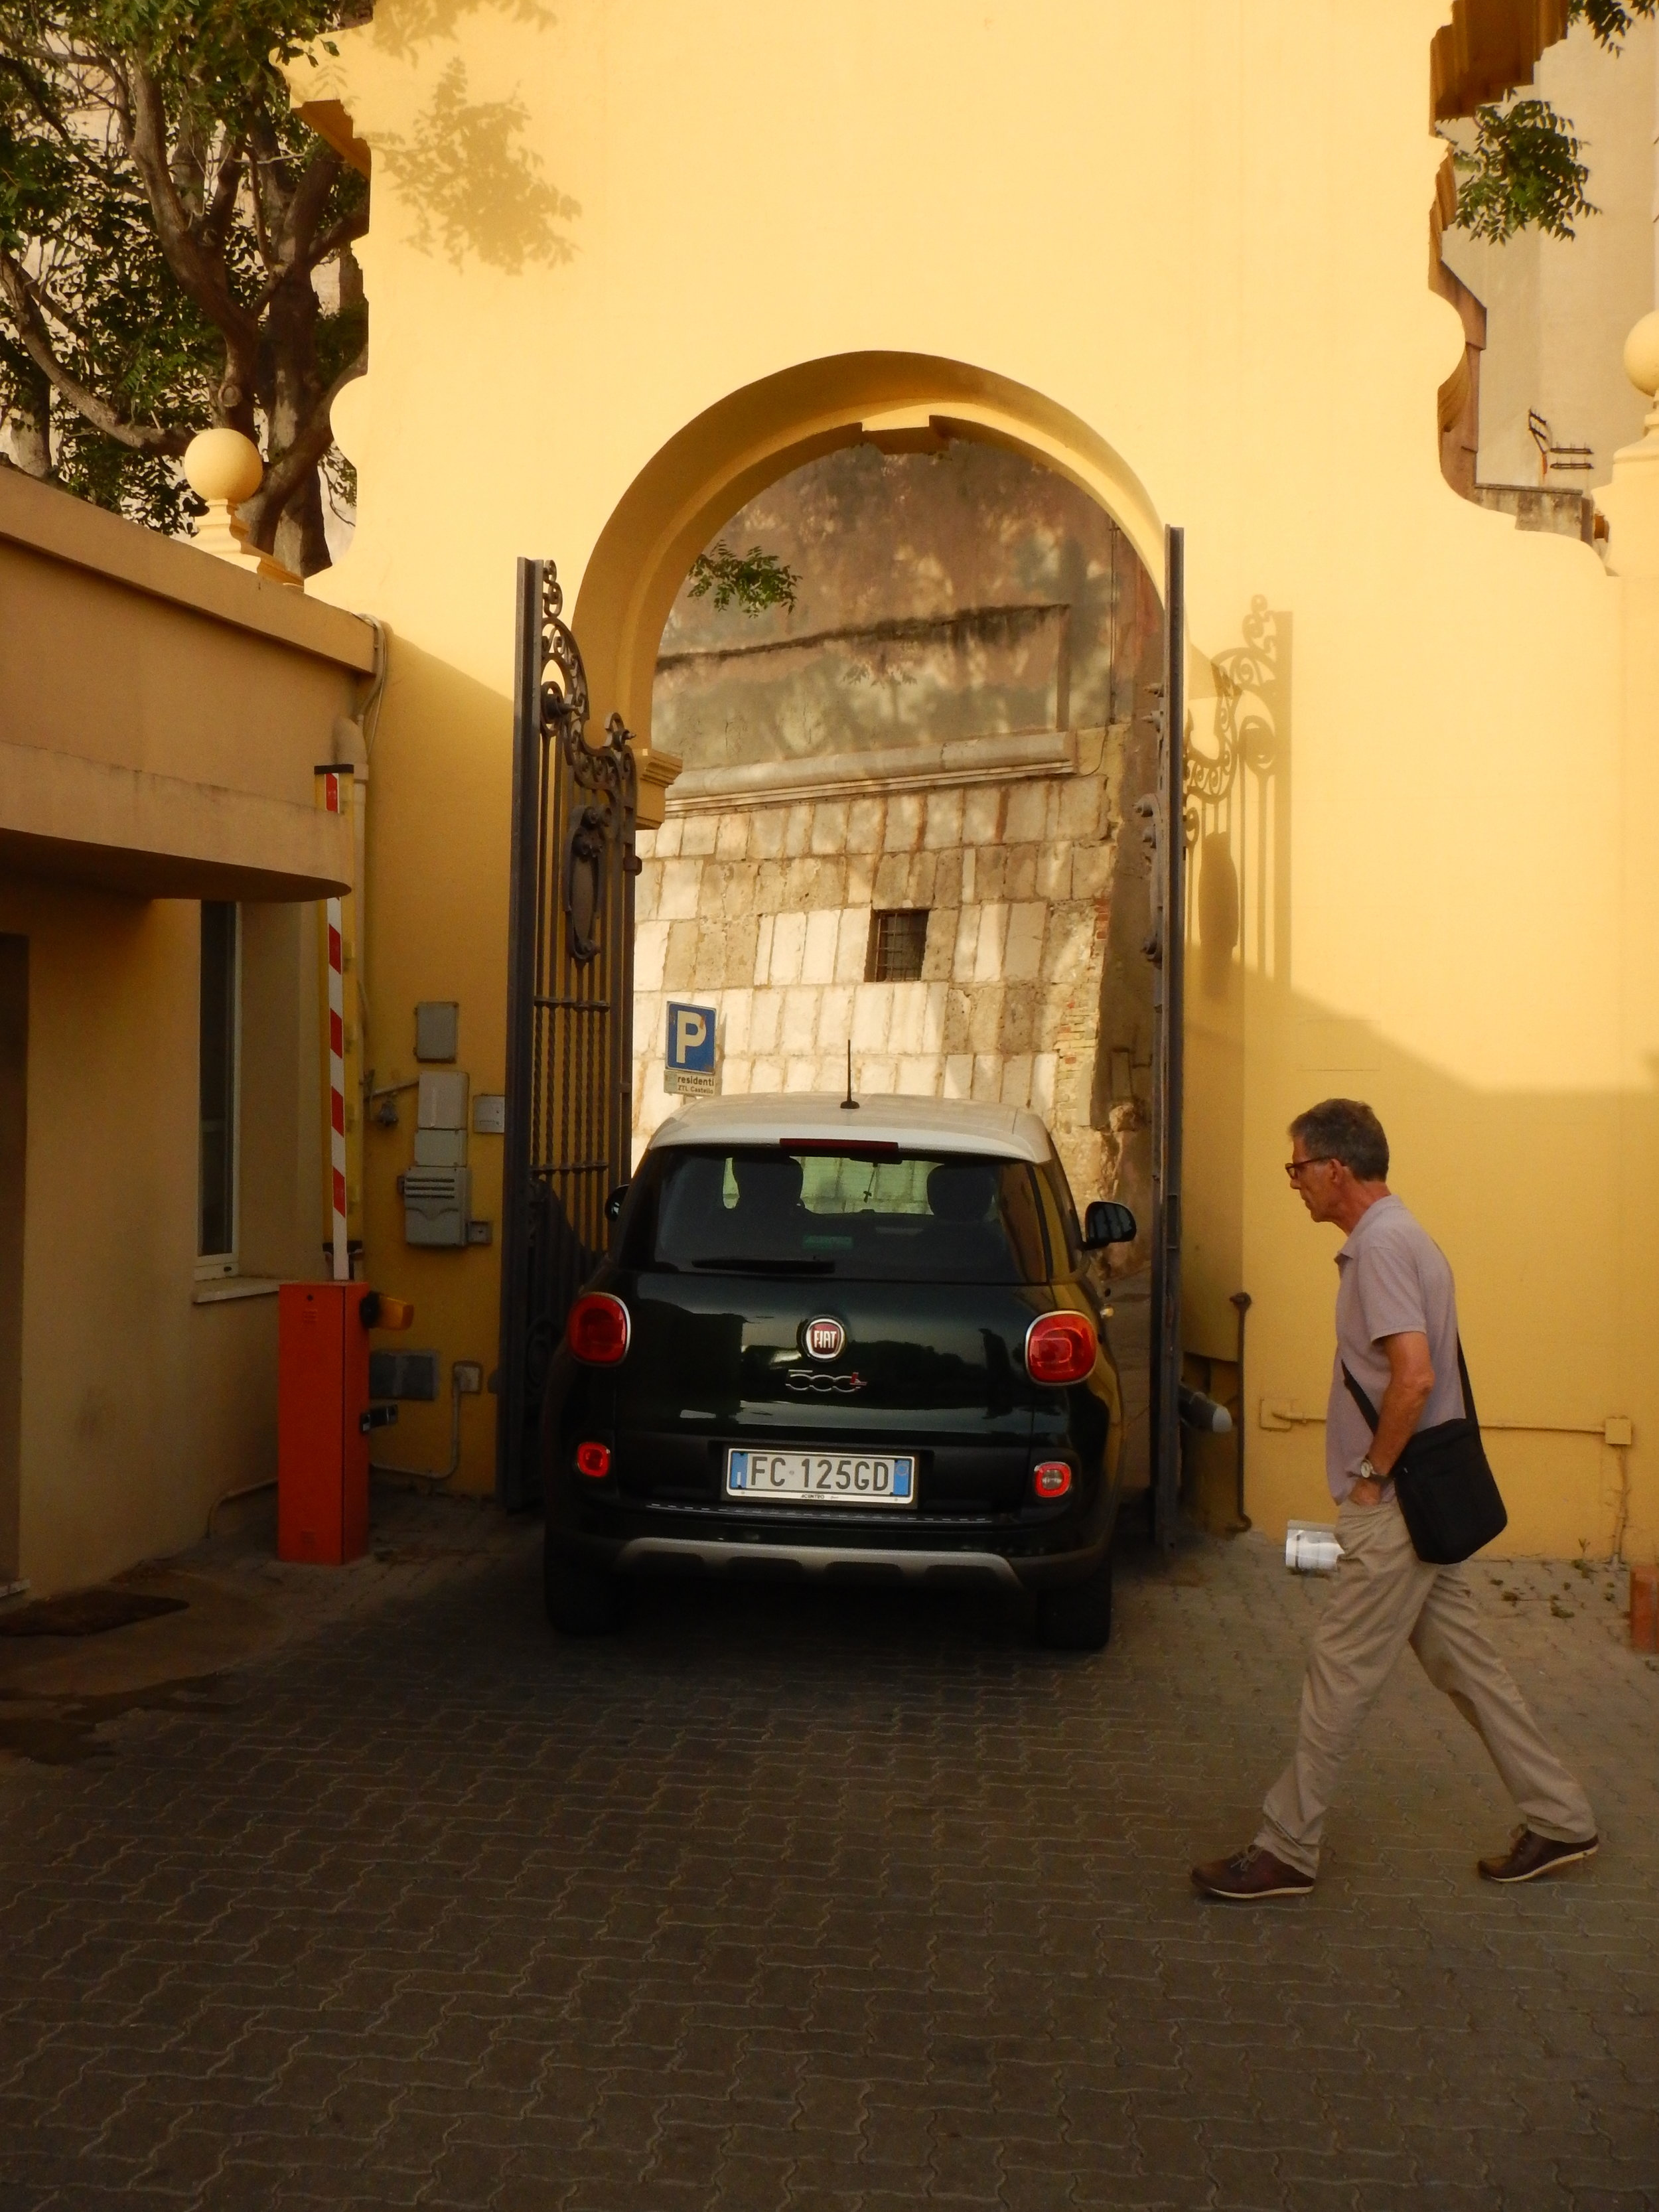 What I love about this picture is that this could only happen in Italy.  Even the miniscule Fiat 500 has no room to spare as it squeezes though this gate.